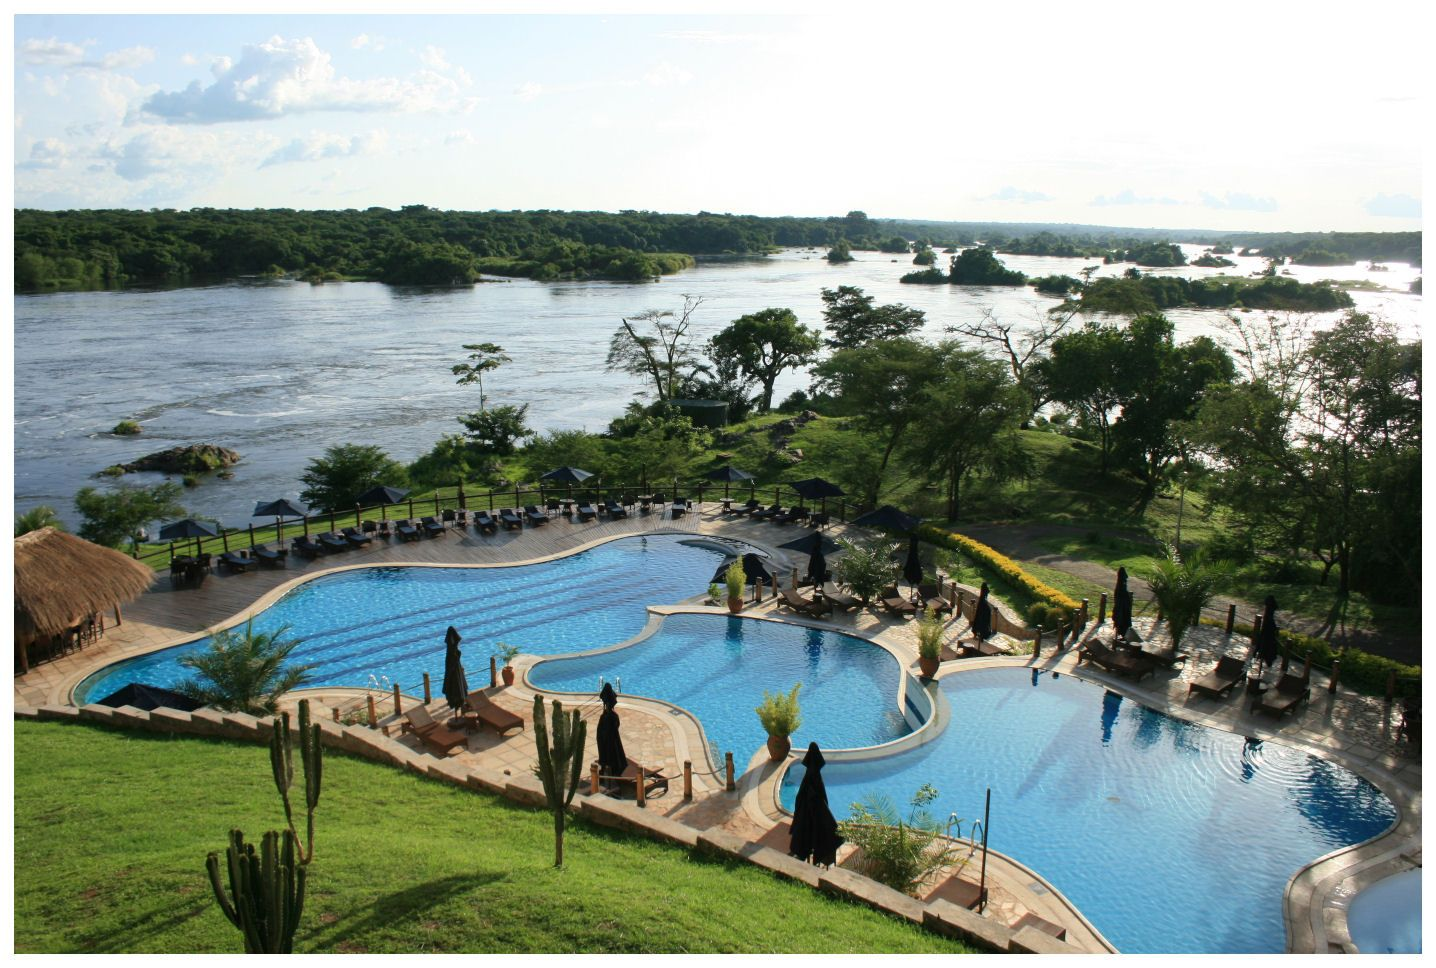 Chobe safari lodge offers affordable accommodation in - Victoria park swimming pool price ...